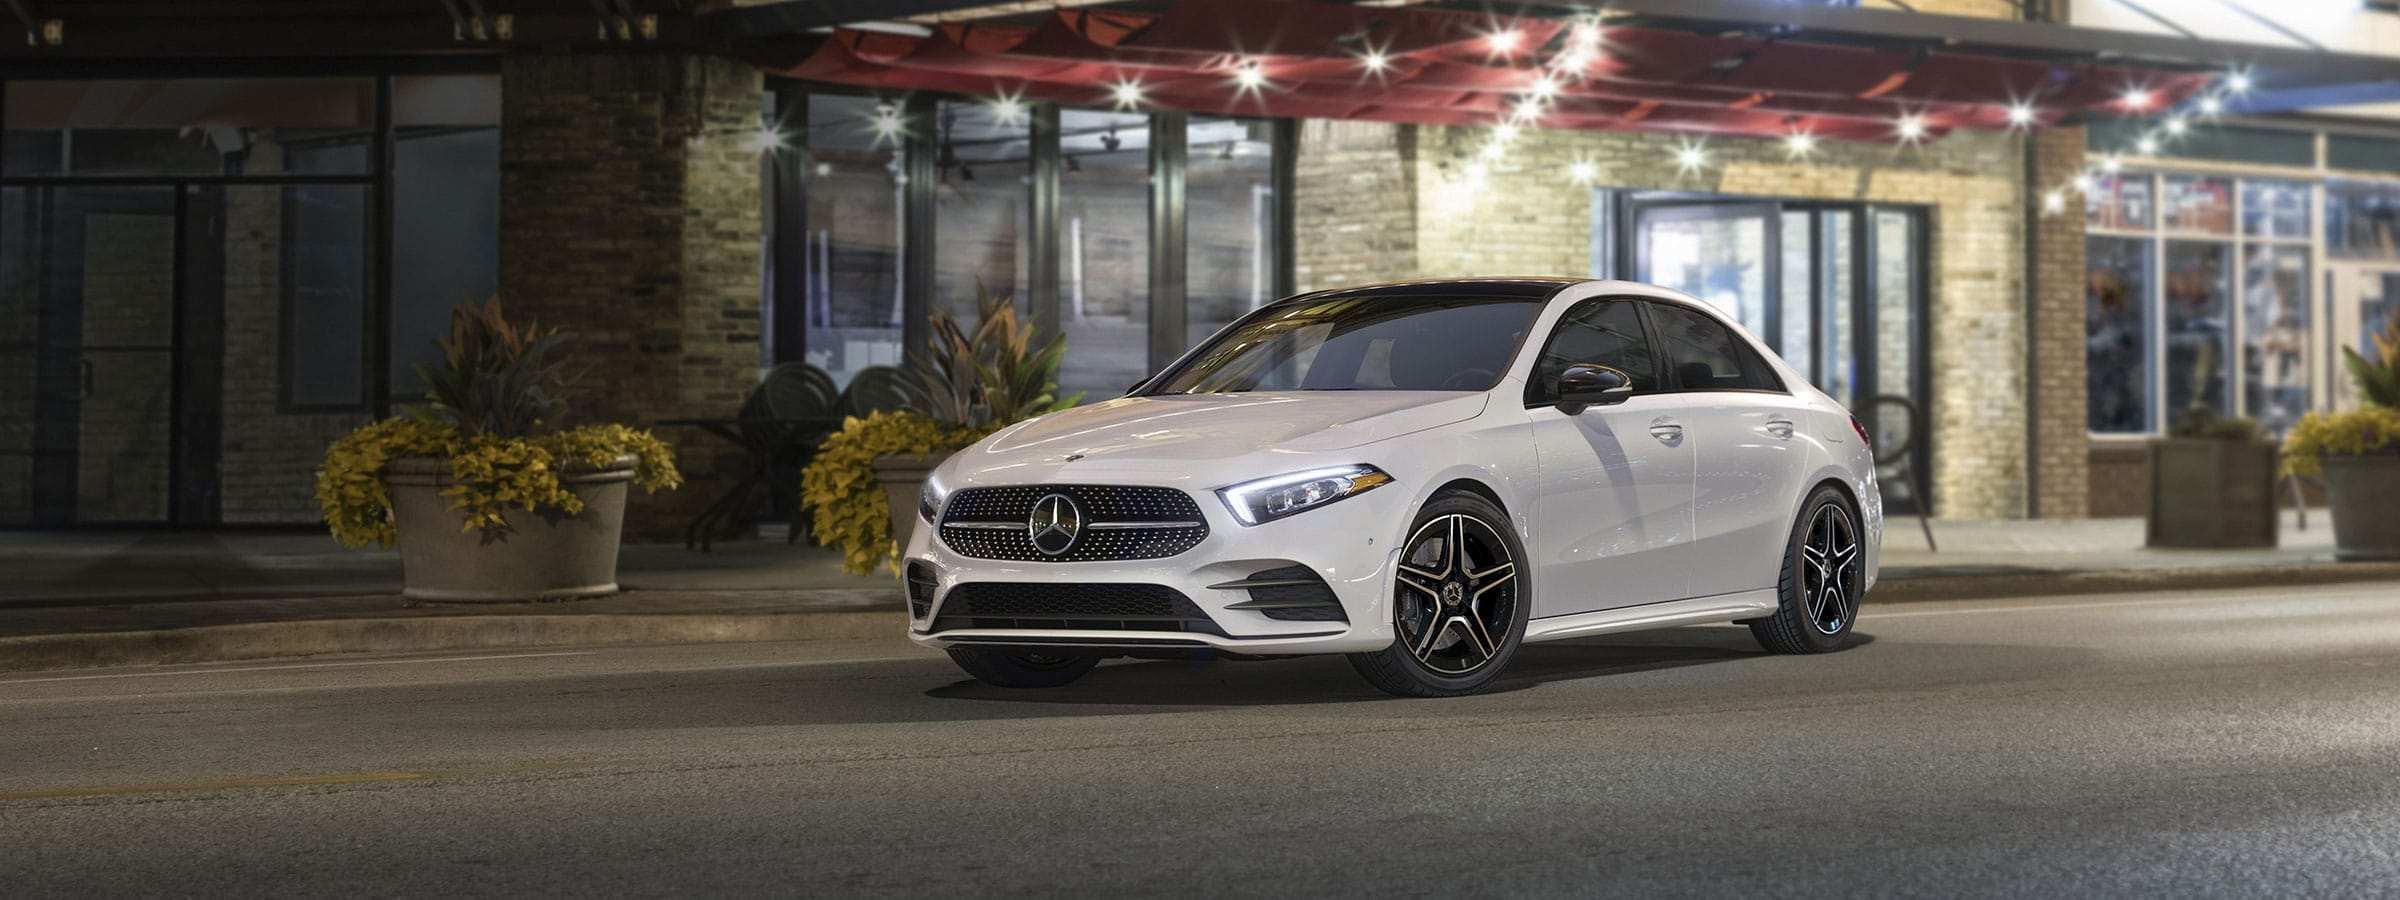 91 The Best Mercedes 2019 A Class Prices